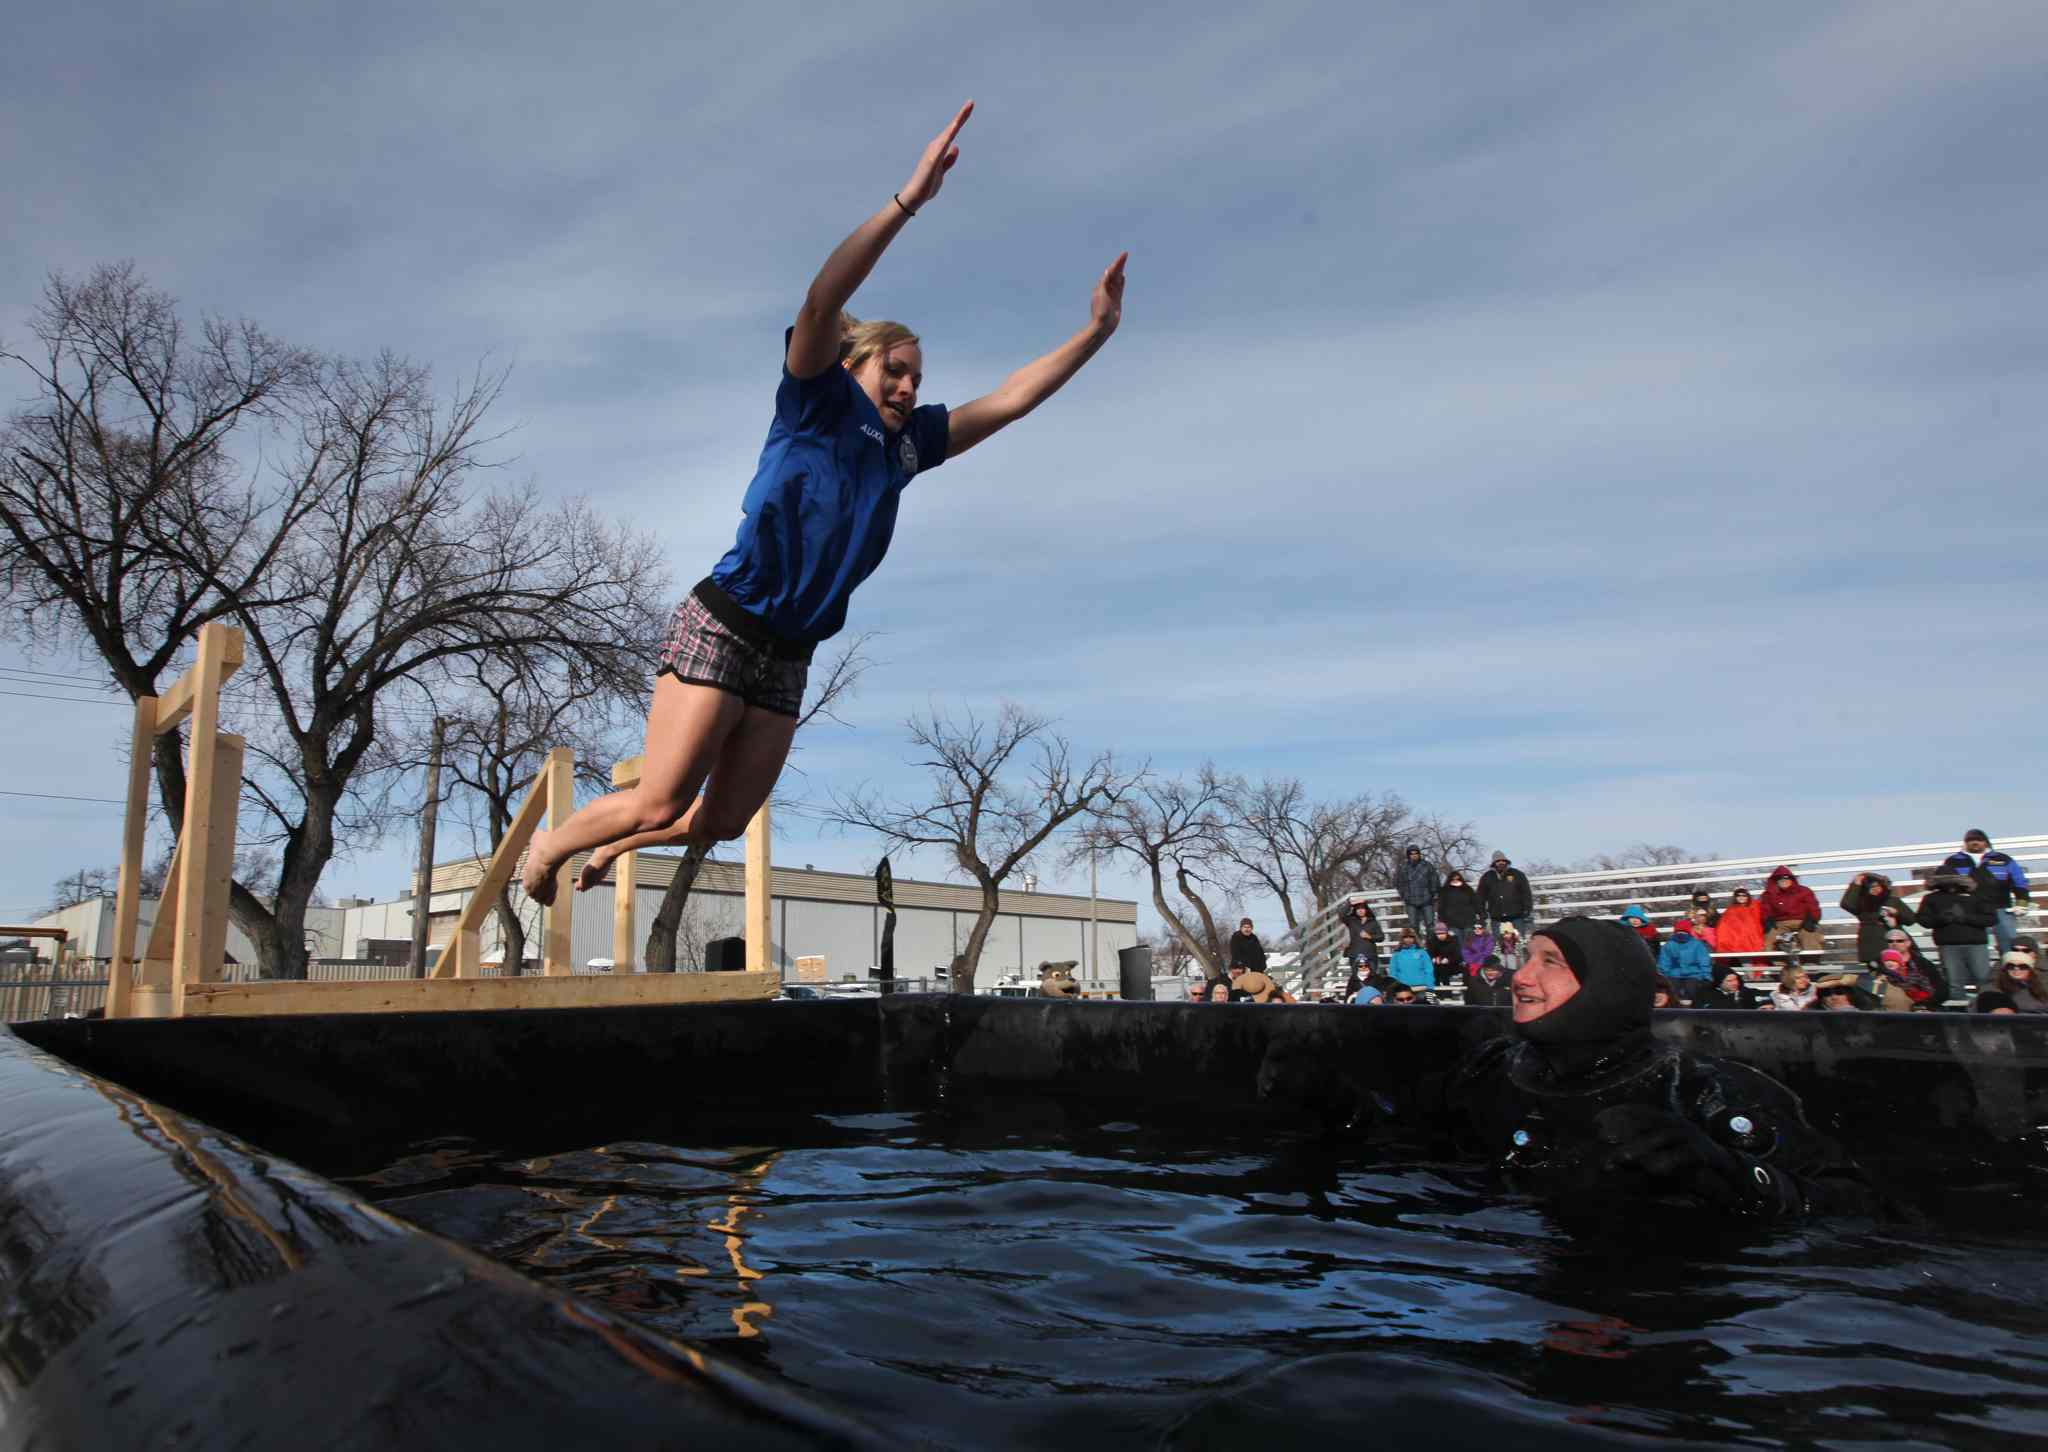 A contestant screams as she braces herself before jumping into the cold water at the Friendship Centre Saturday.